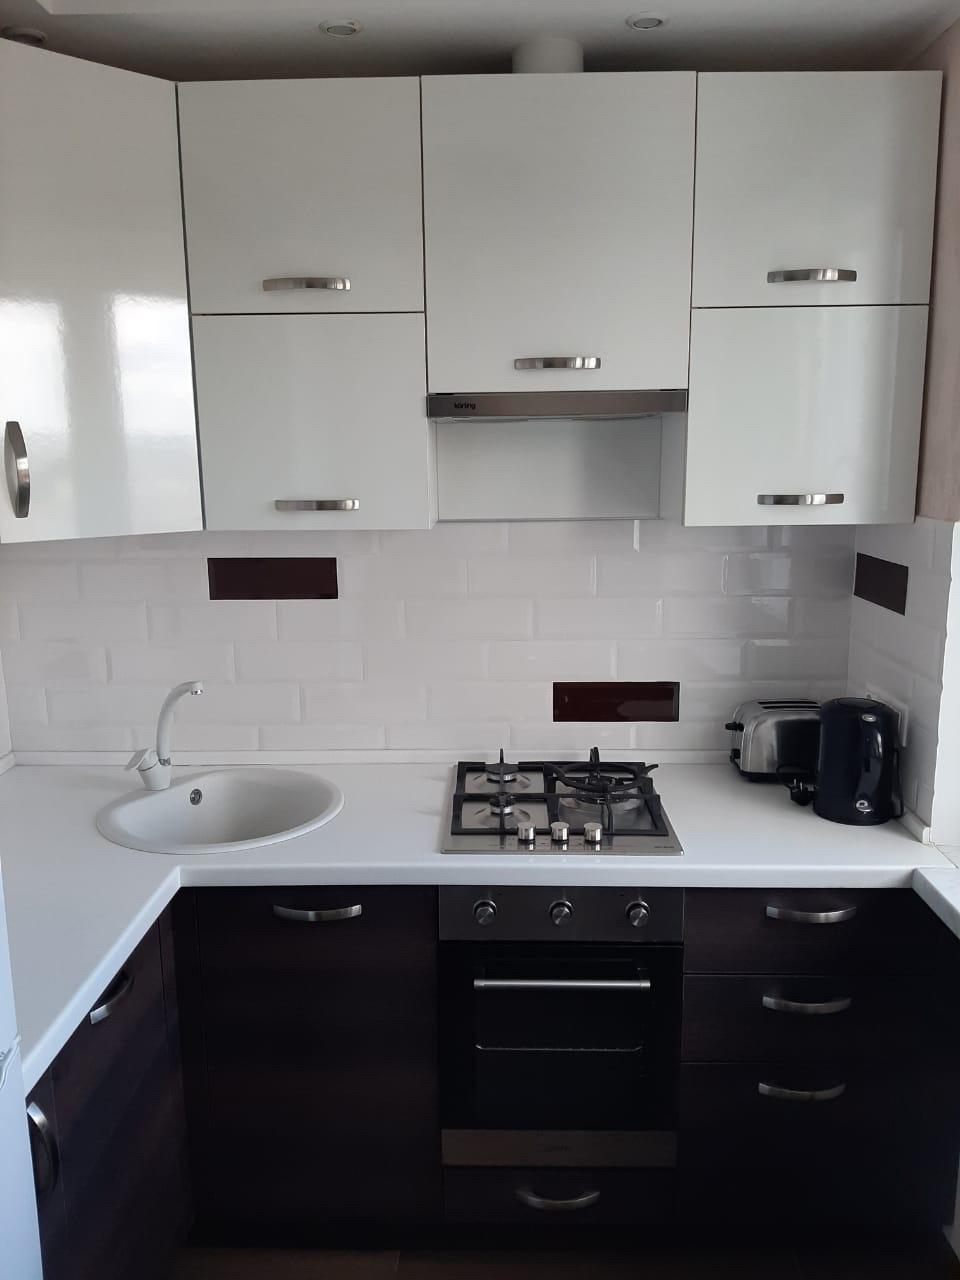 Apartment, 2 rooms, 48 m2 in Moscow 89999089562 buy 7